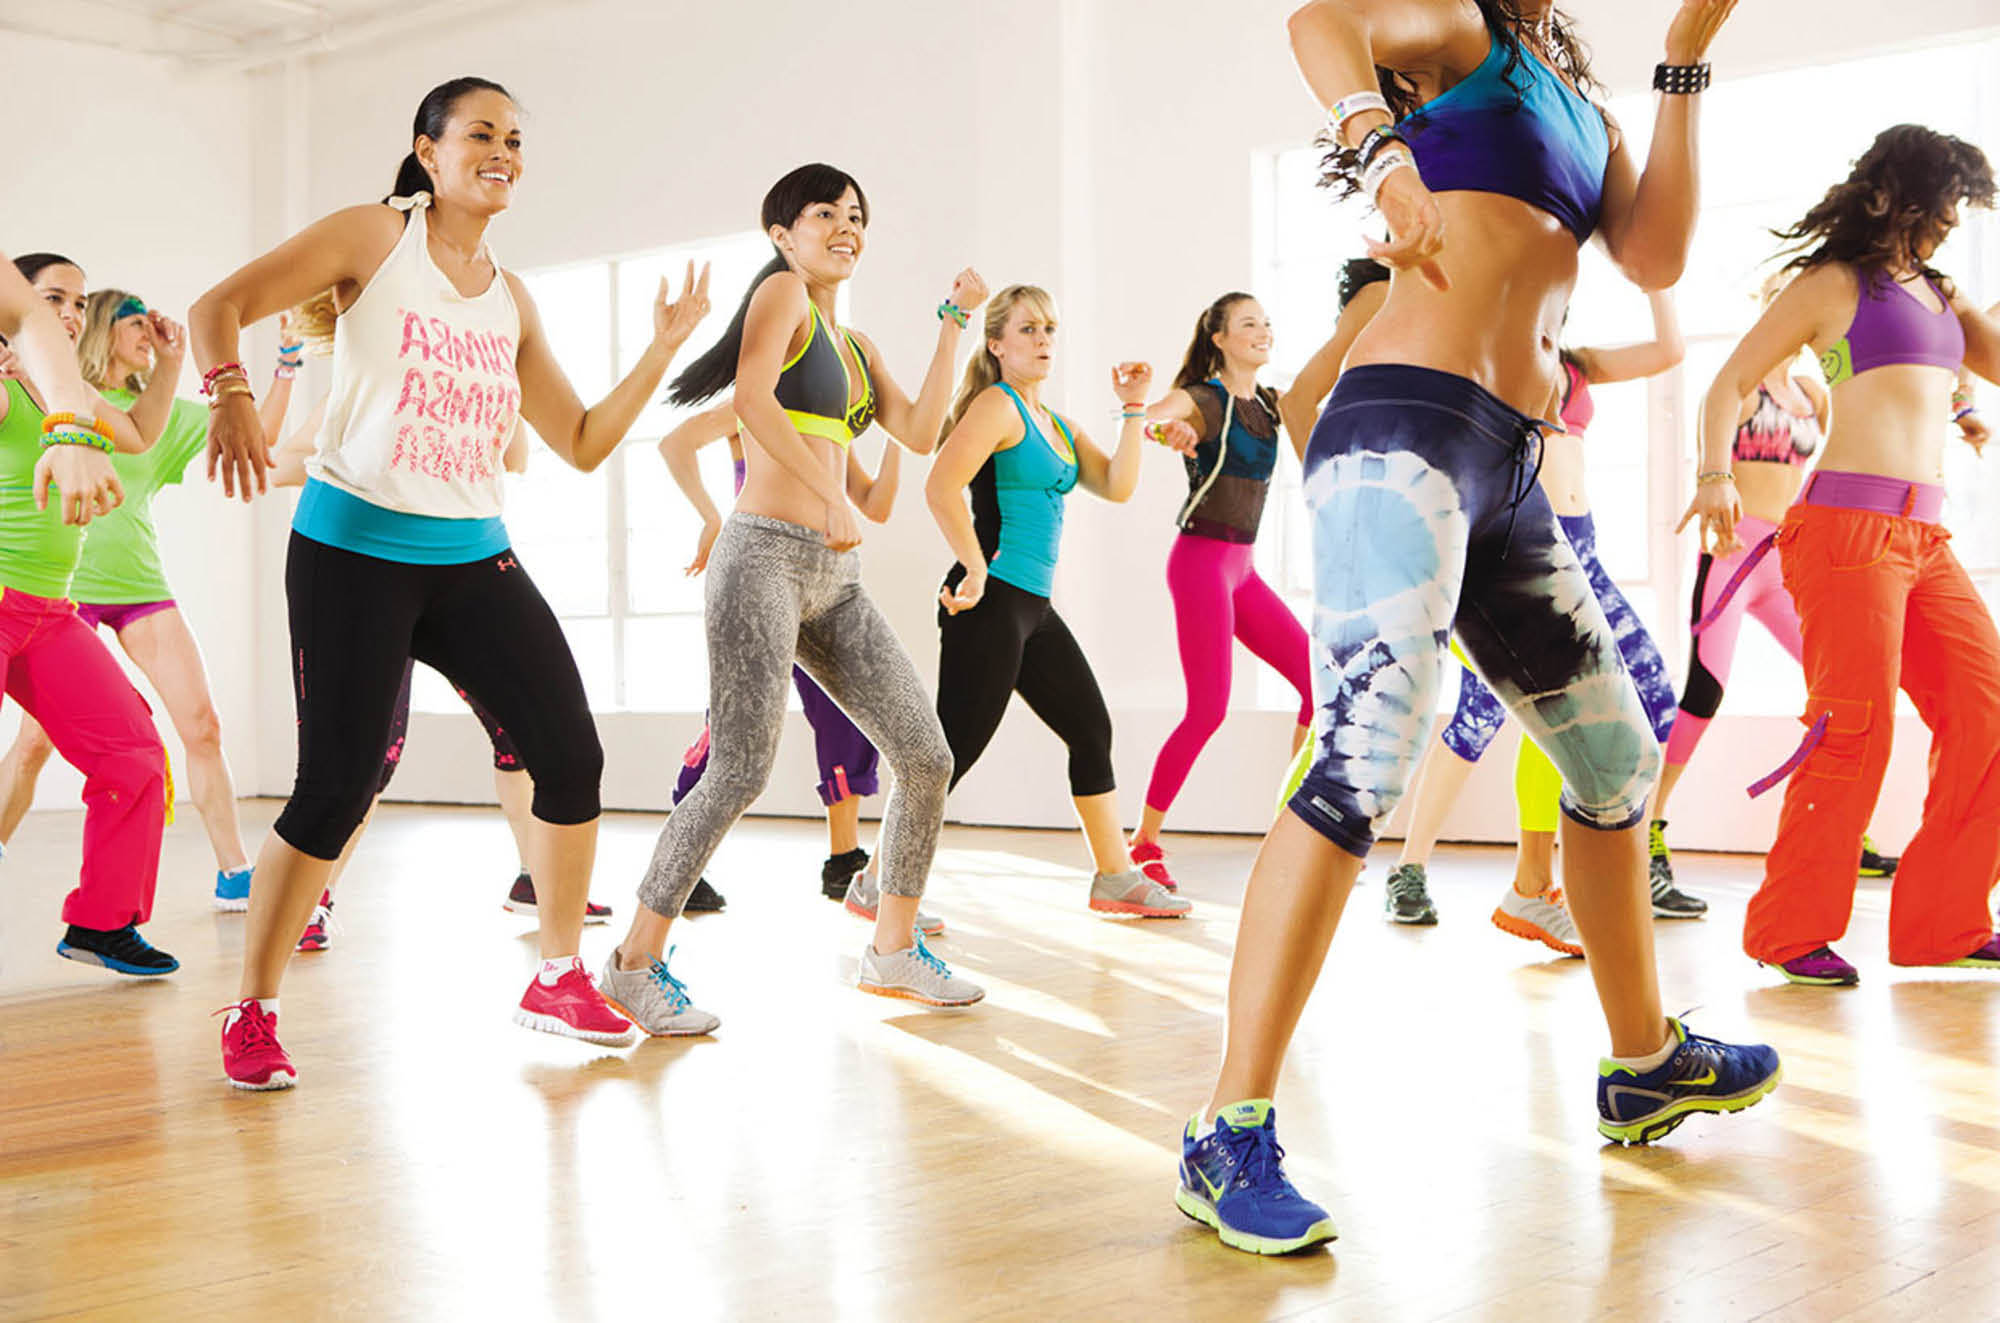 Several convenient times for Zumba classes